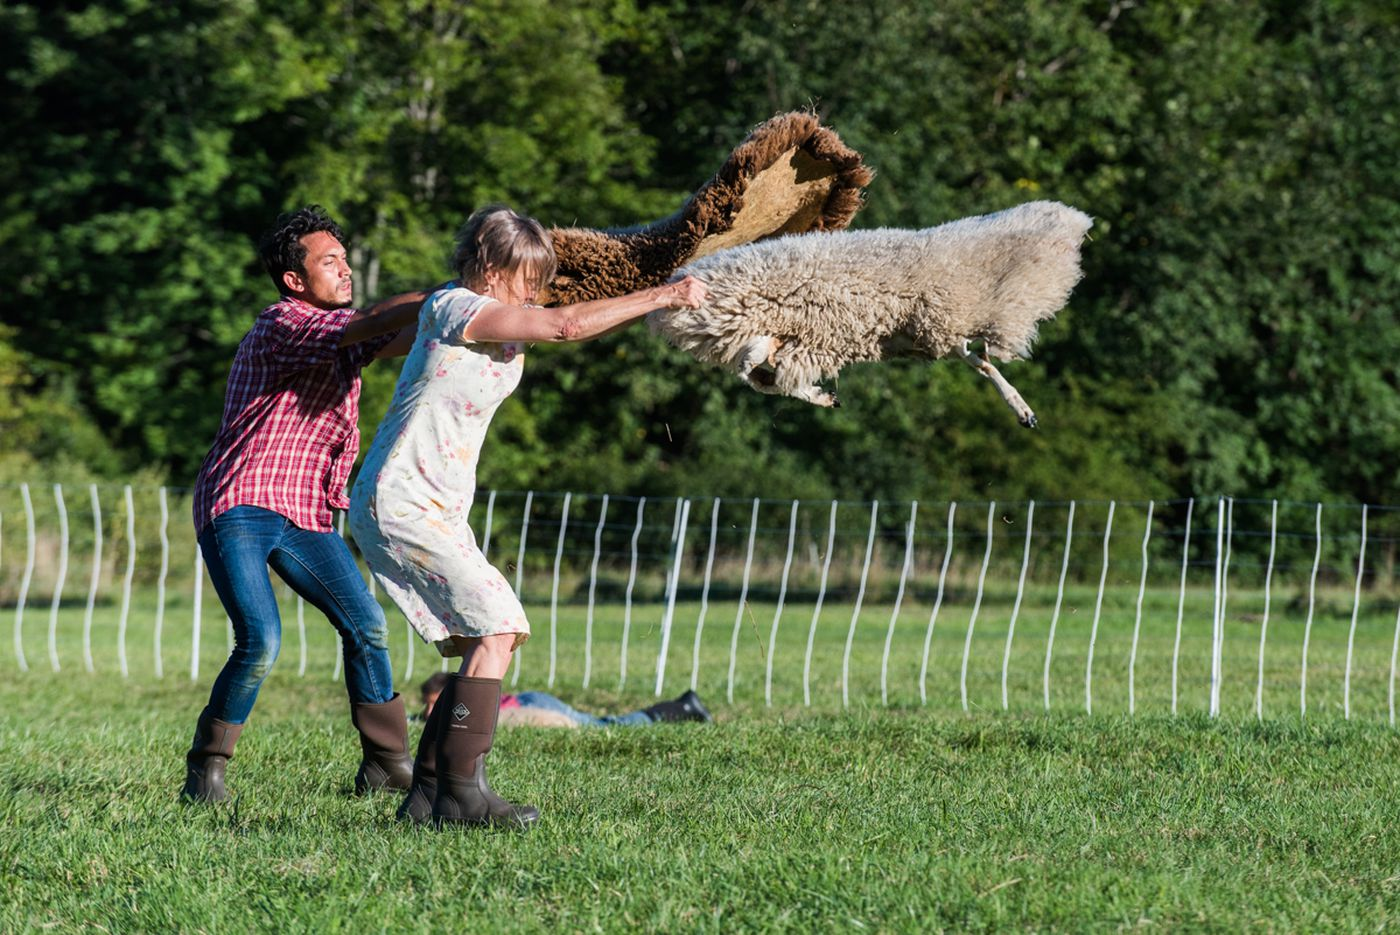 'Doggie Hamlet': A baaa-llet where sheep are the stars